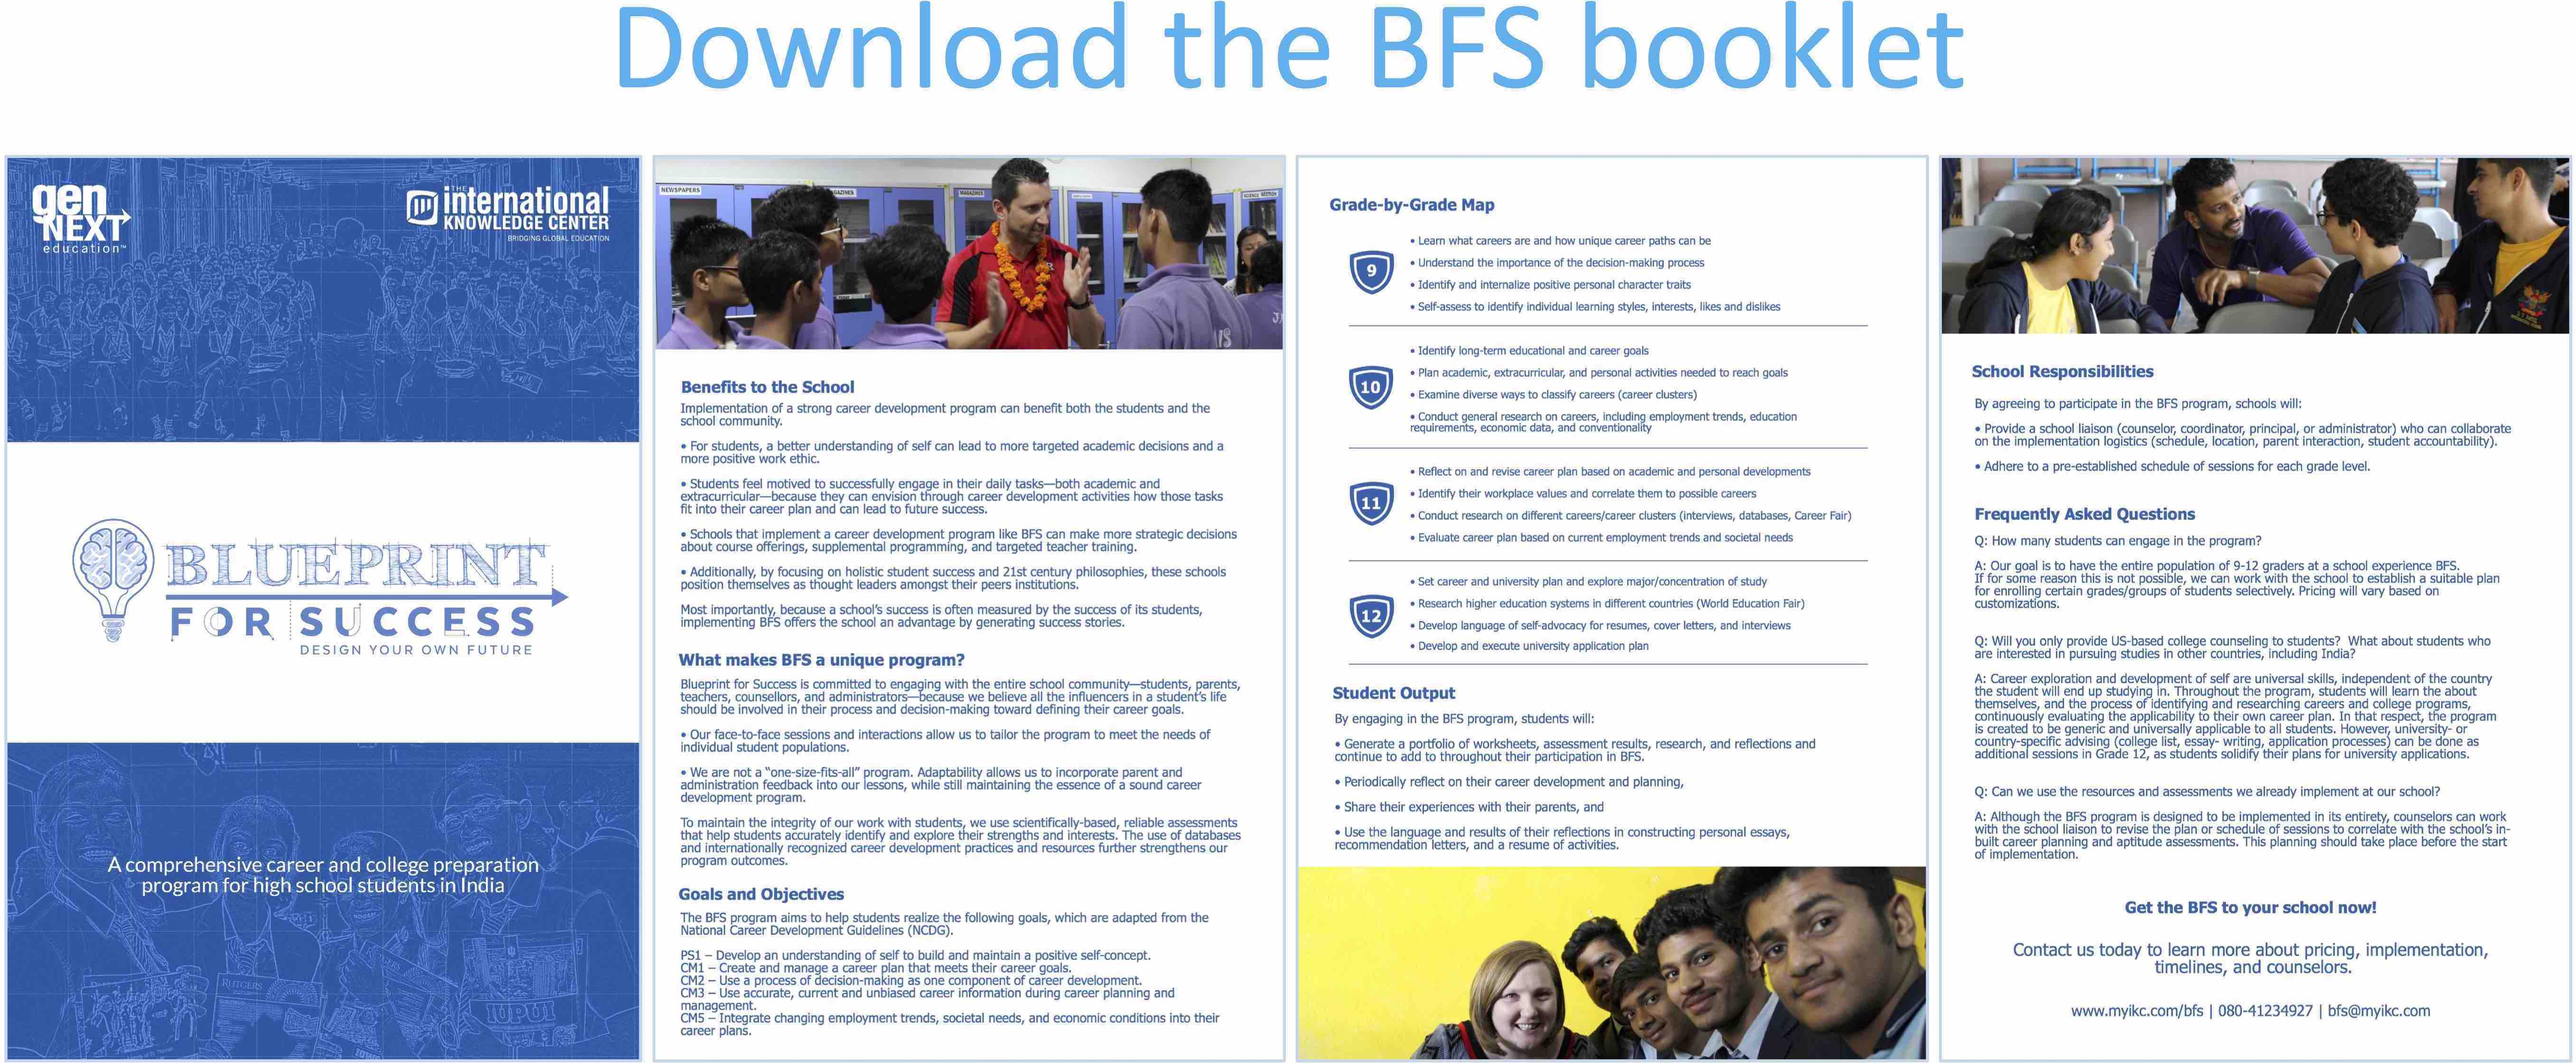 Blueprint for success bfs international knowledge center get the bfs to your school now malvernweather Choice Image